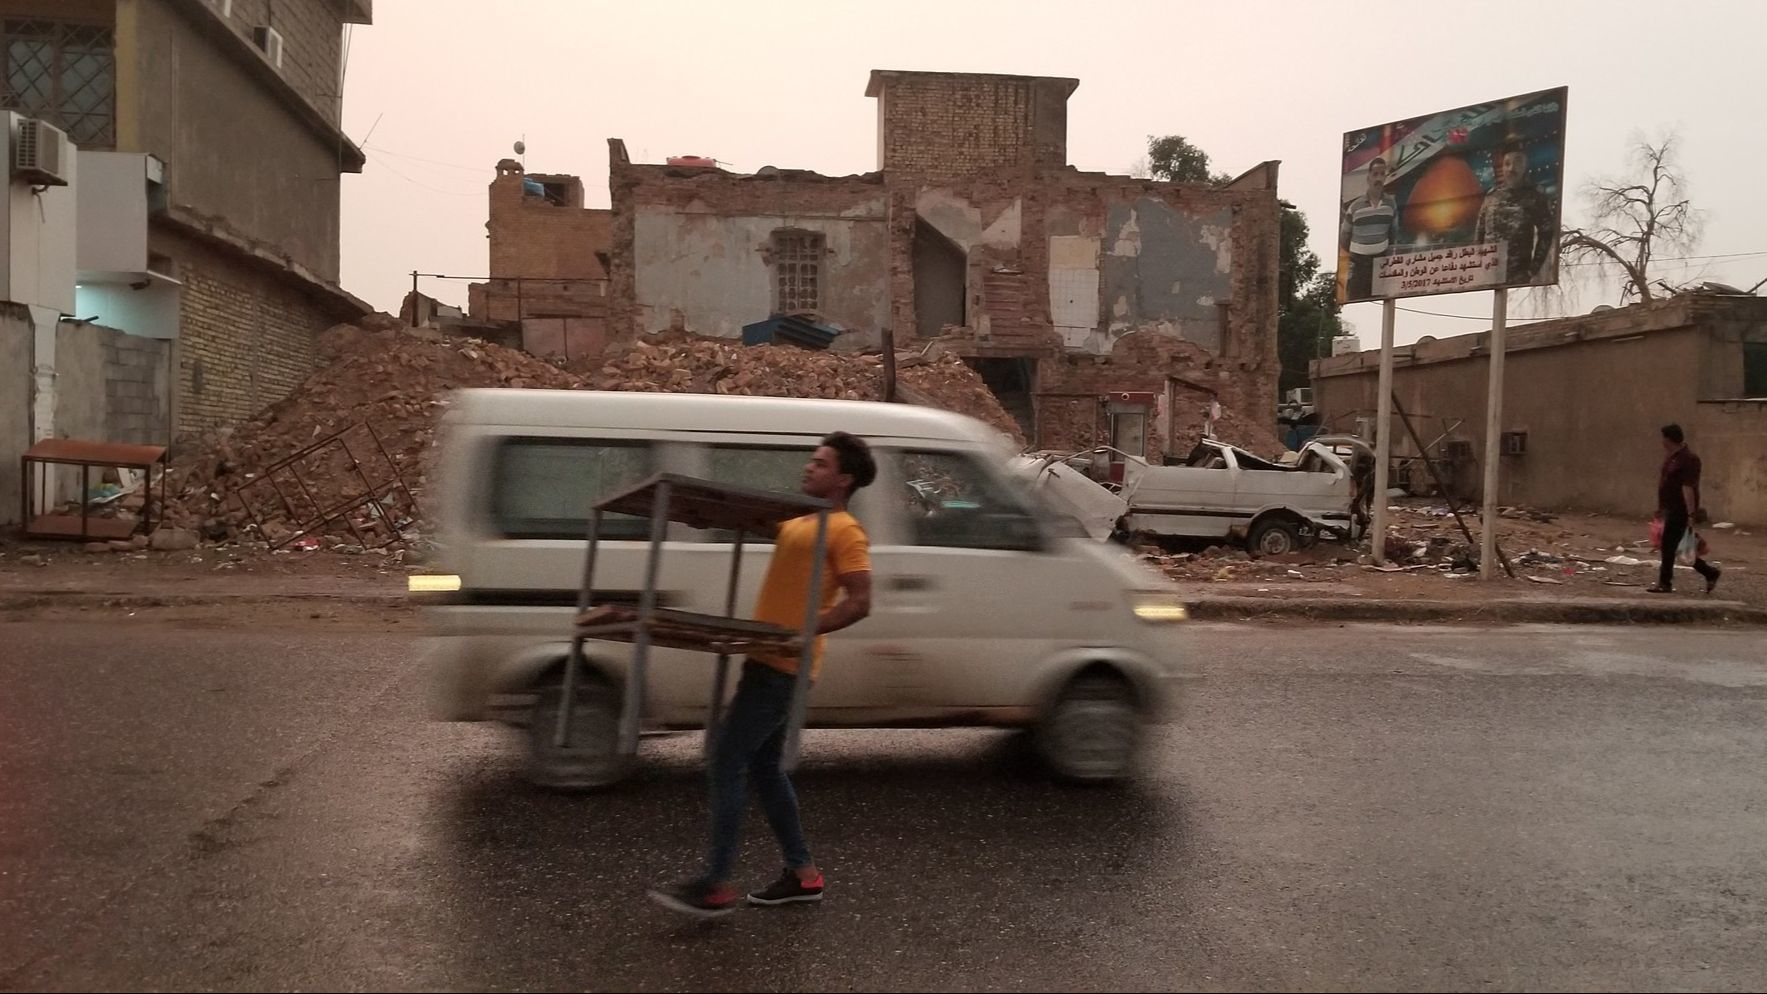 Basra was once a jewel of a city. Now it's a symbol what's wrong in Iraq